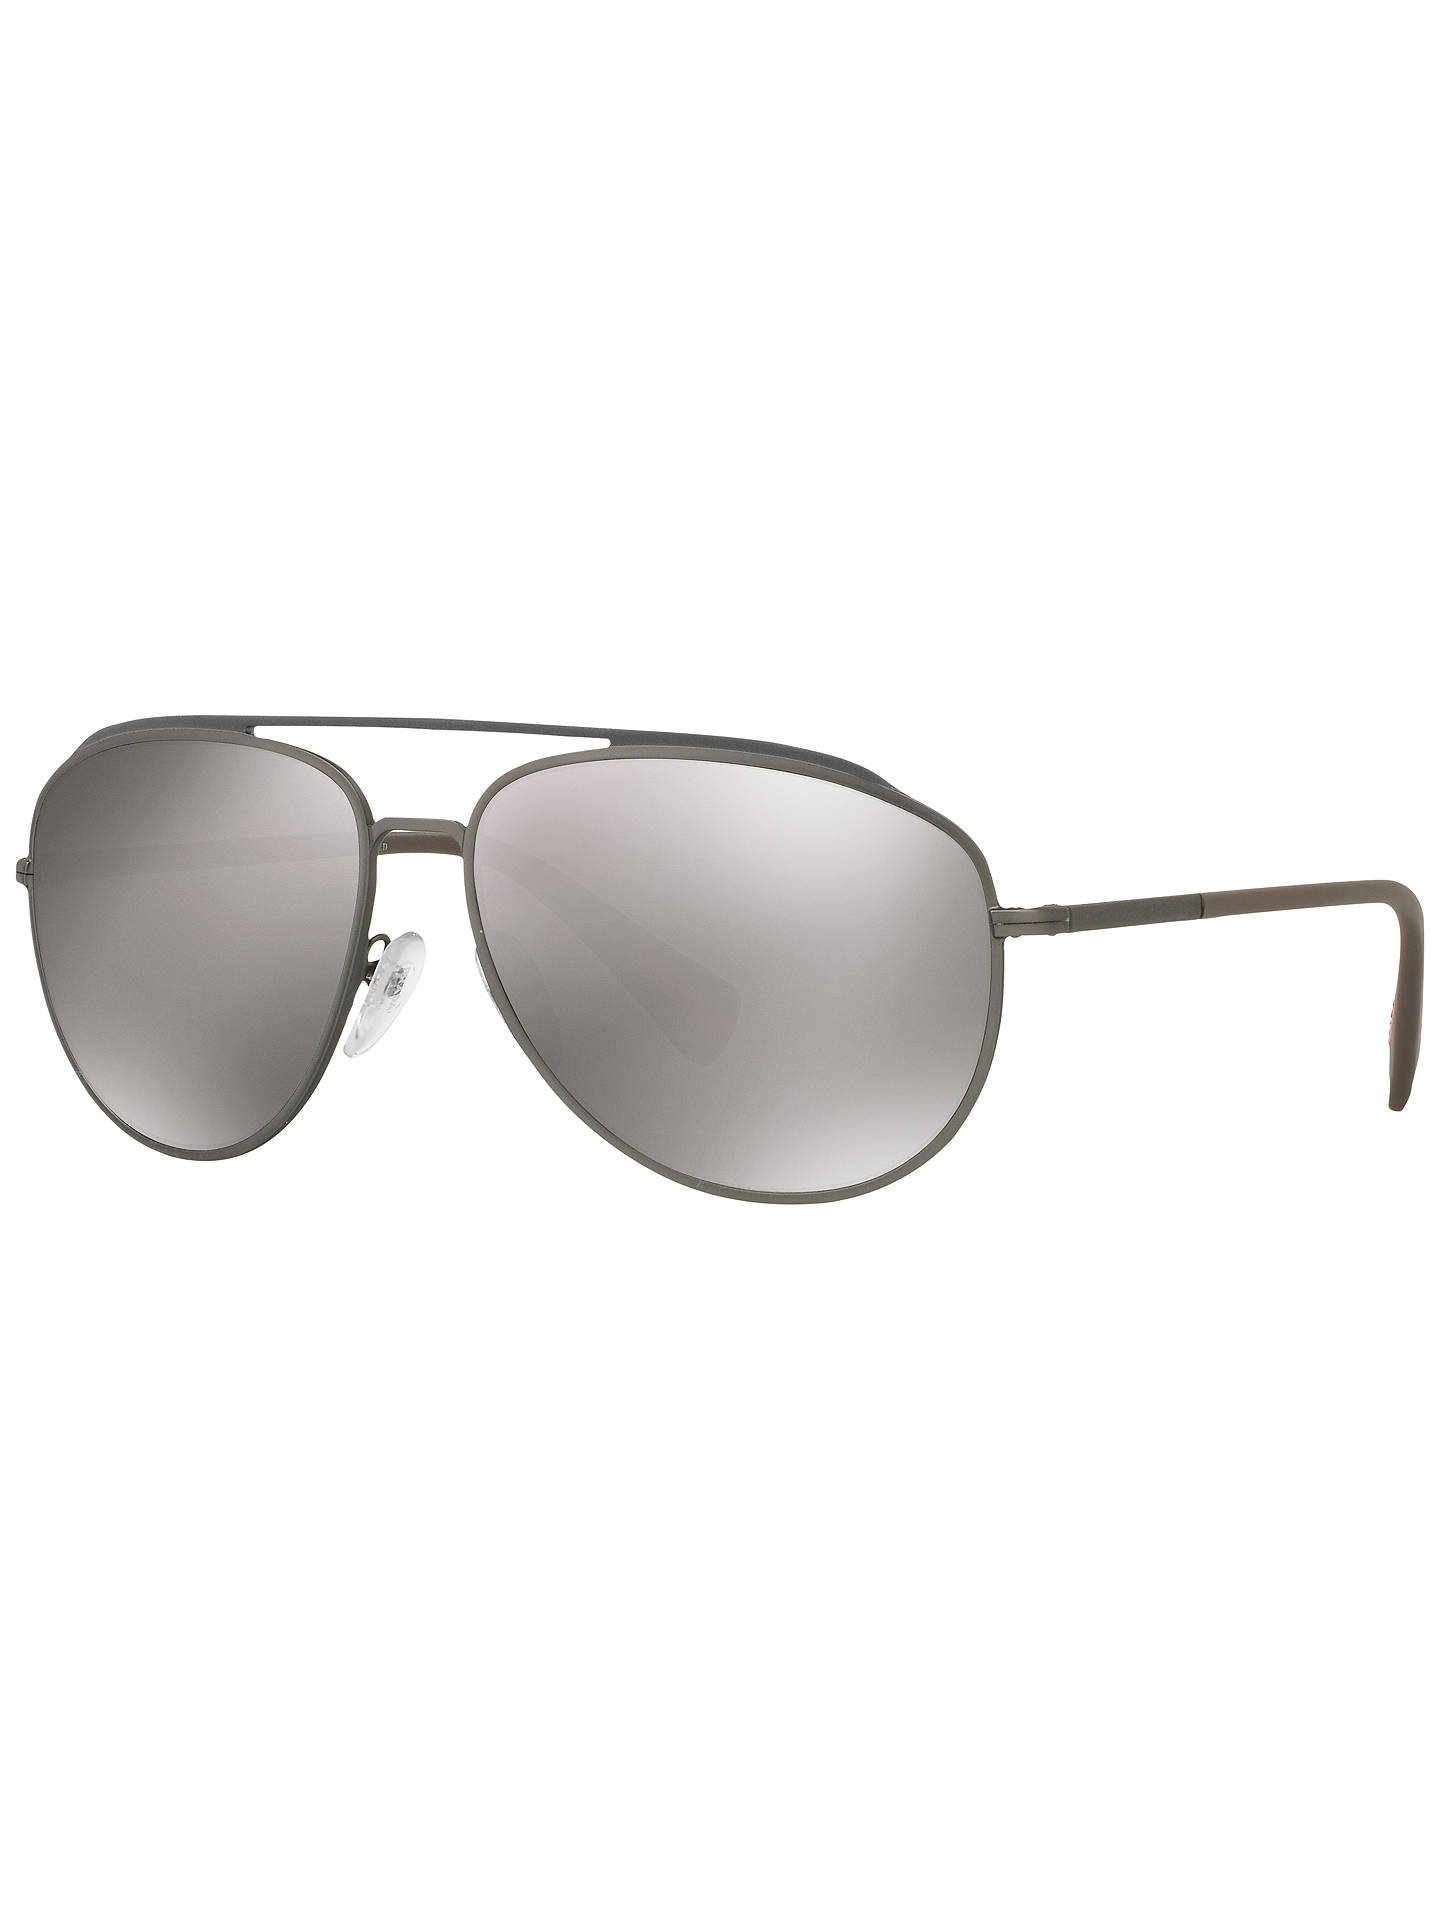 449ee12204 Buy Prada Linea Rossa PS 55RS Polarised Aviator Sunglasses